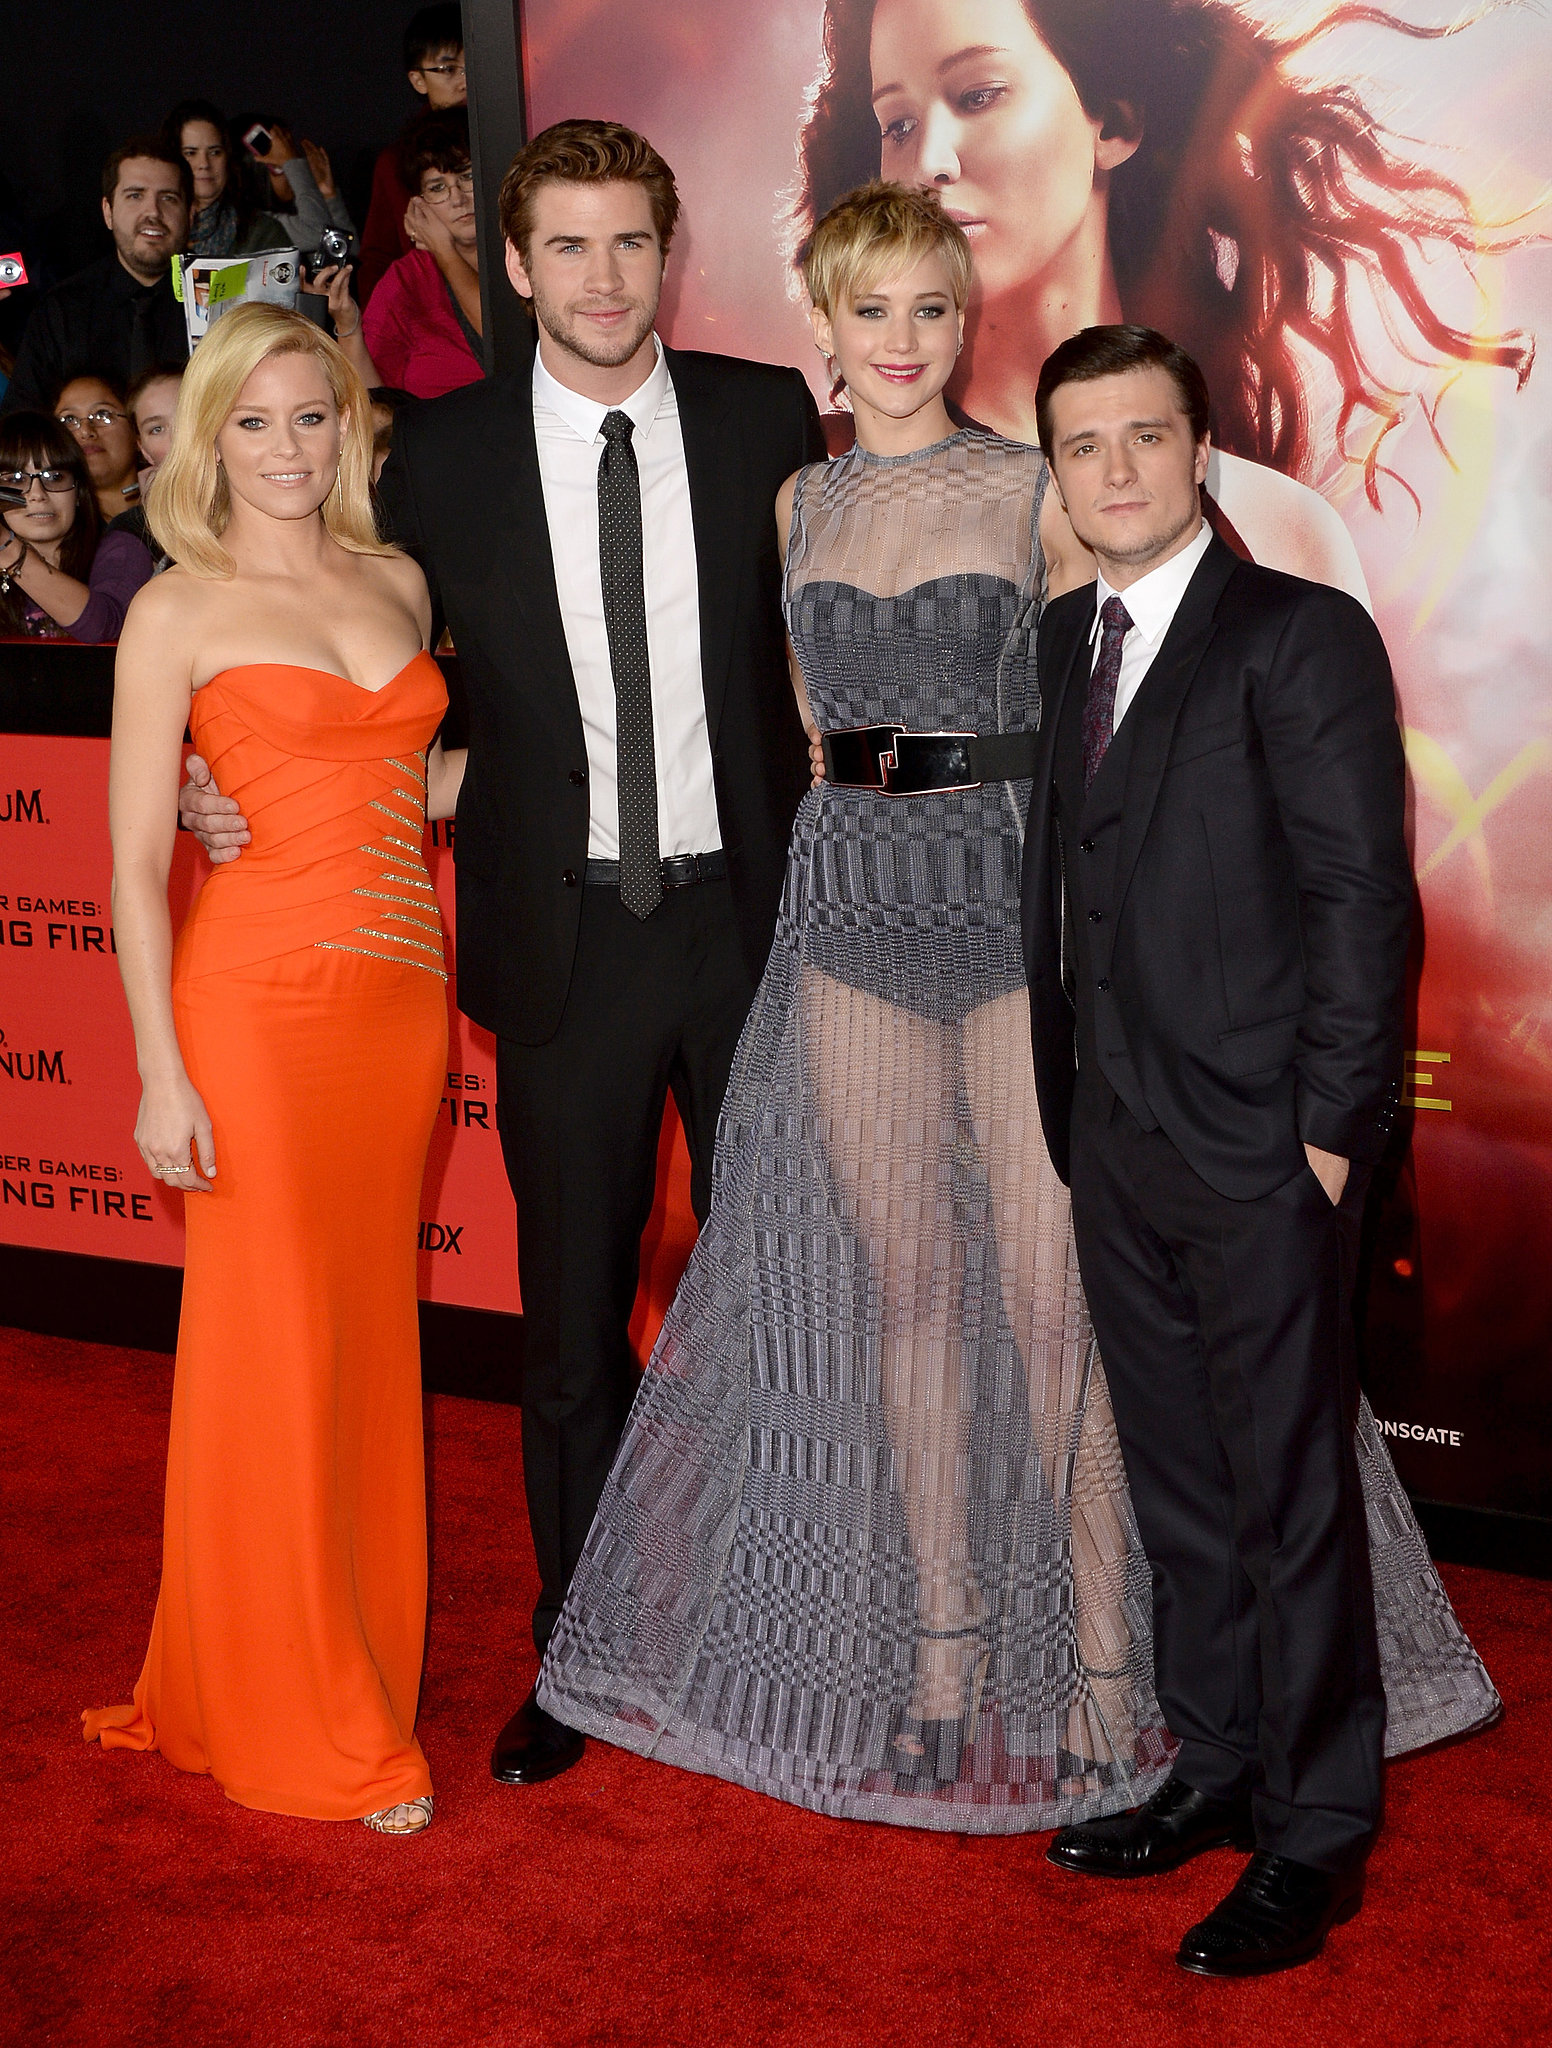 Elizabeth banks liam hemsworth jennifer lawrence and josh